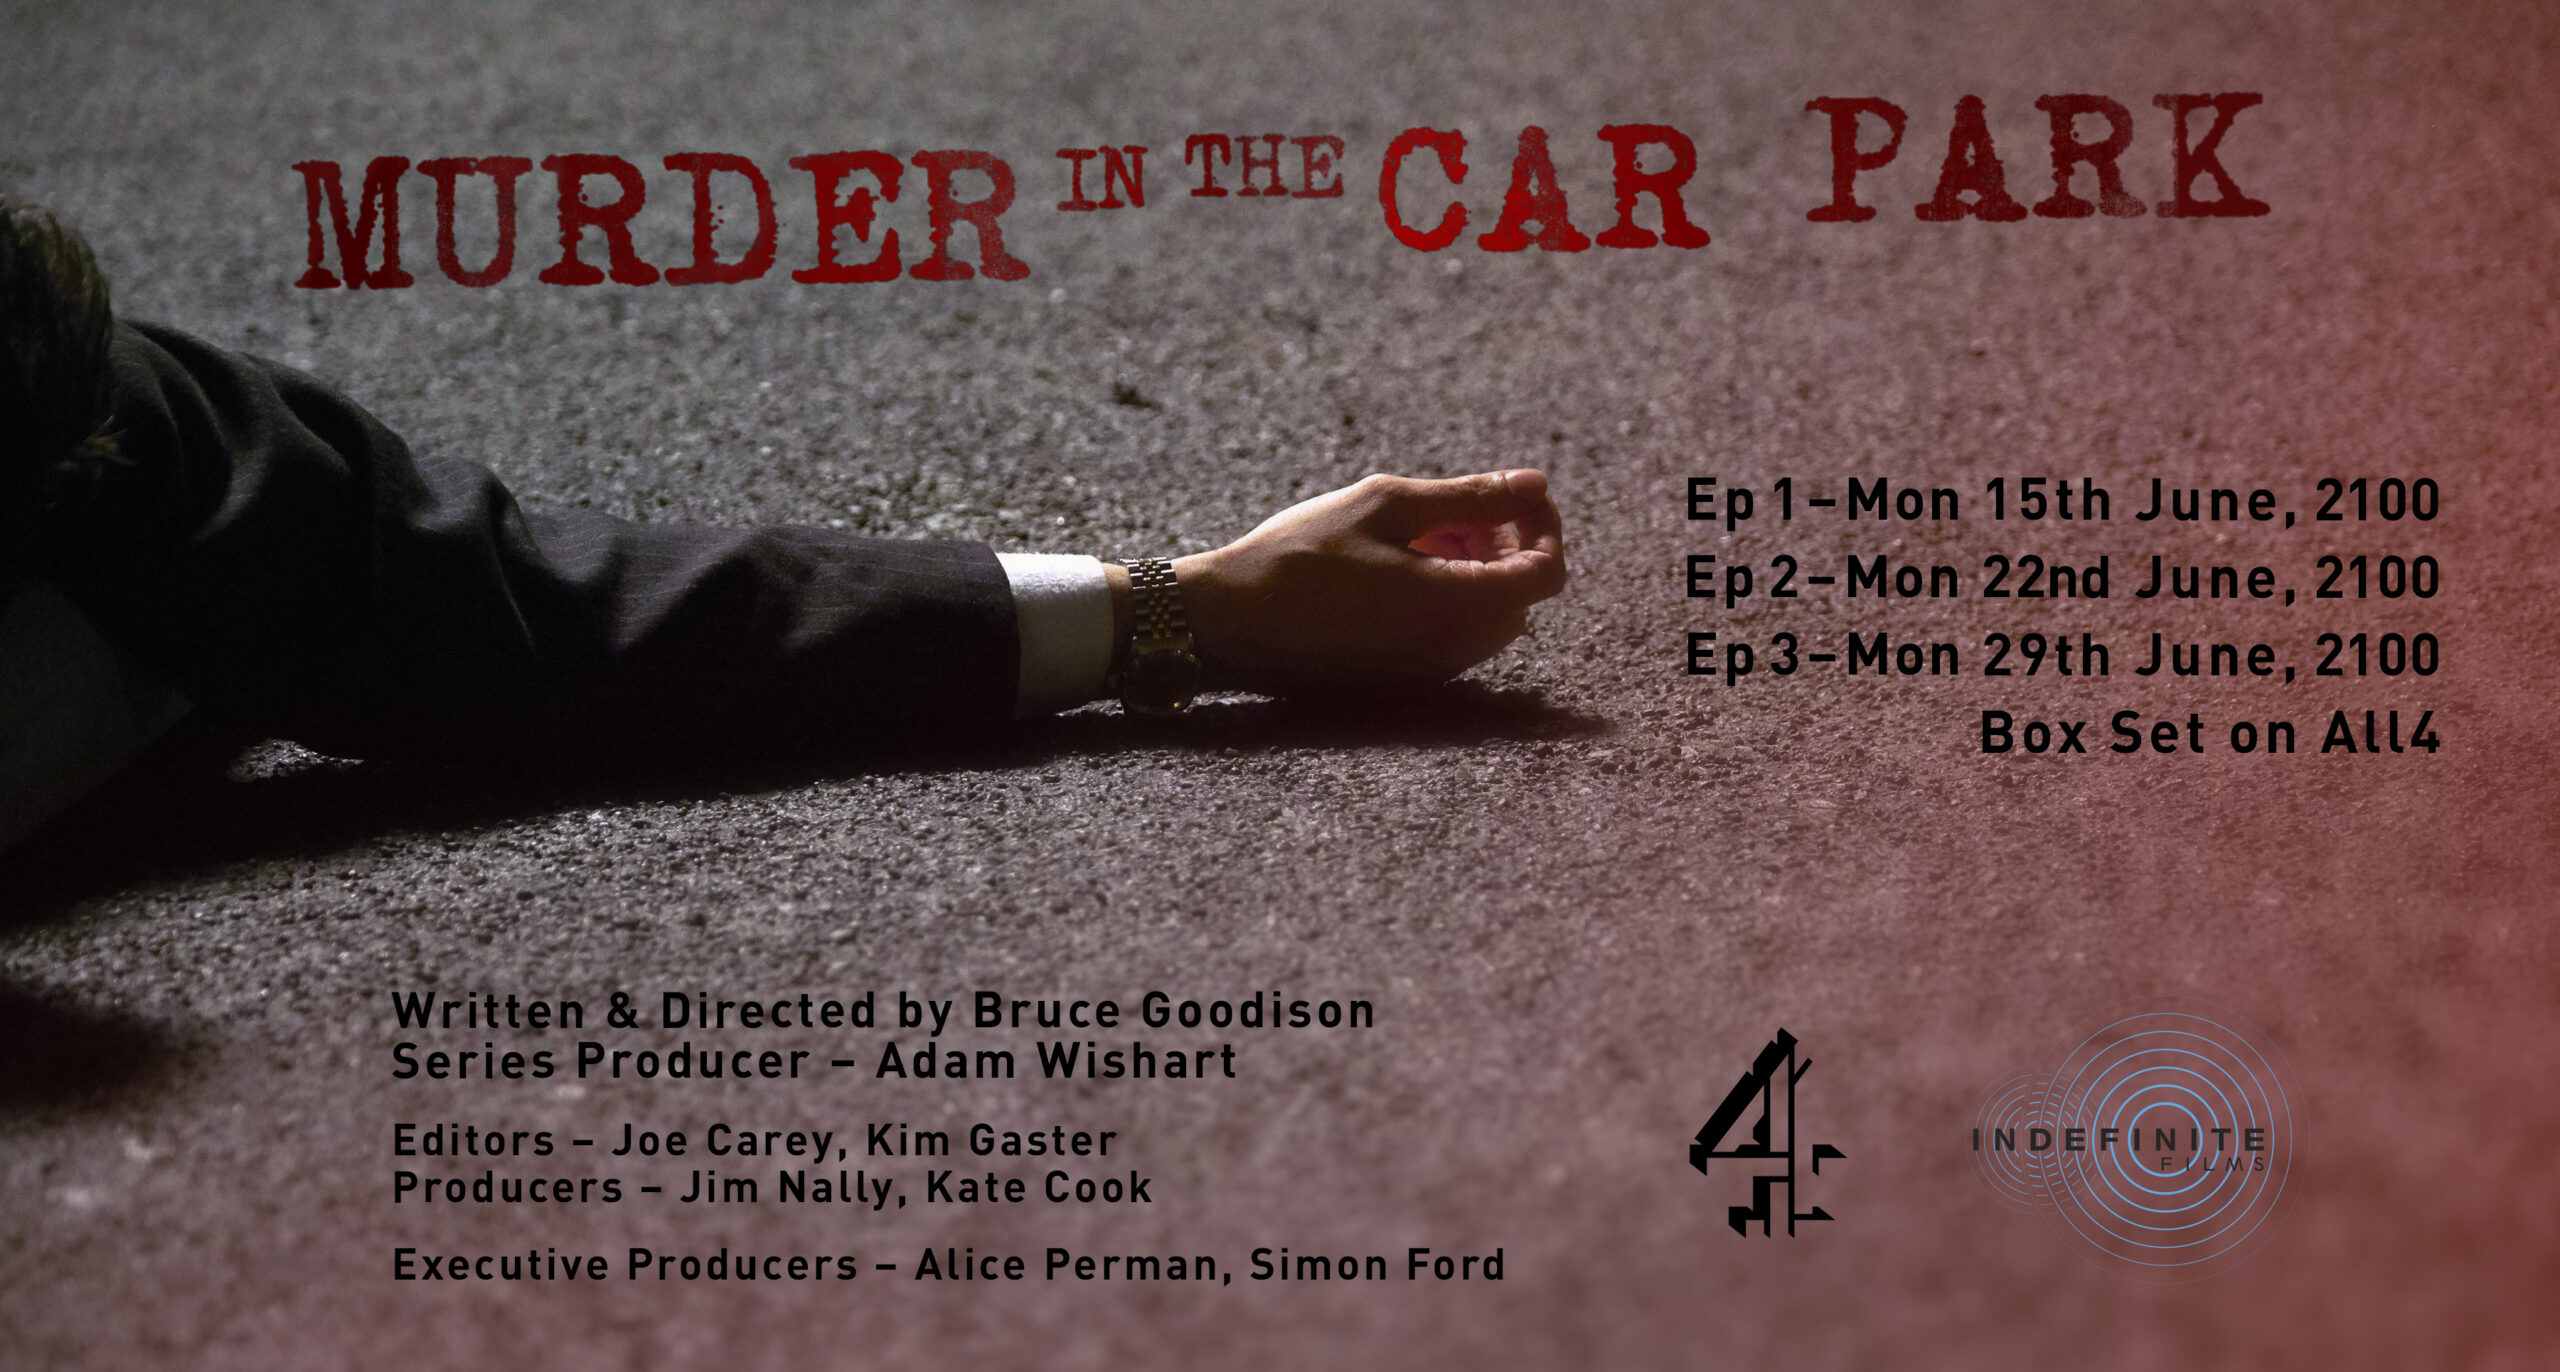 Darryl Clark / Murder in the Car Park